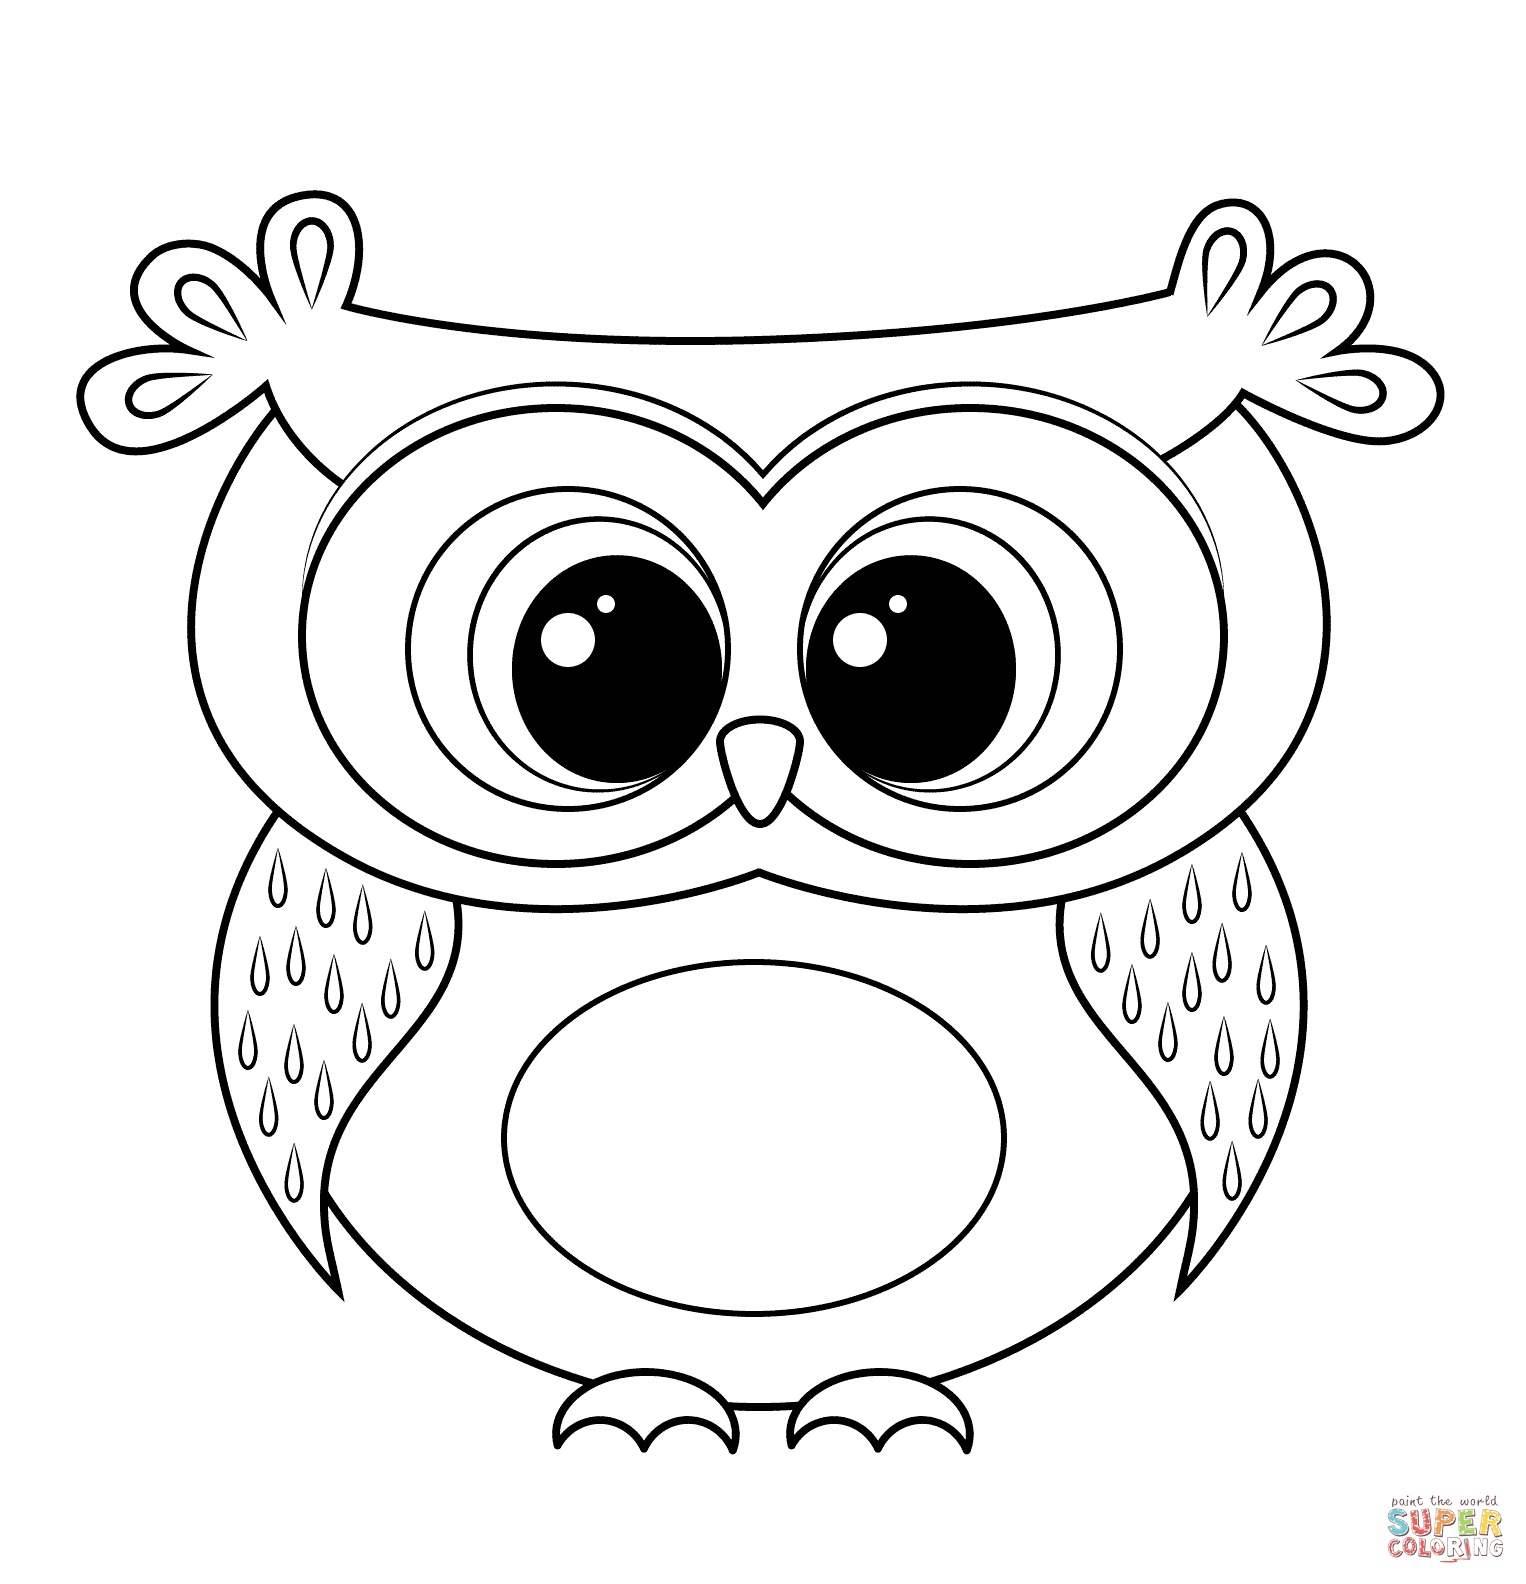 1526x1584 New Cartoon Owl Coloring Page Free Coloring Pages For Children